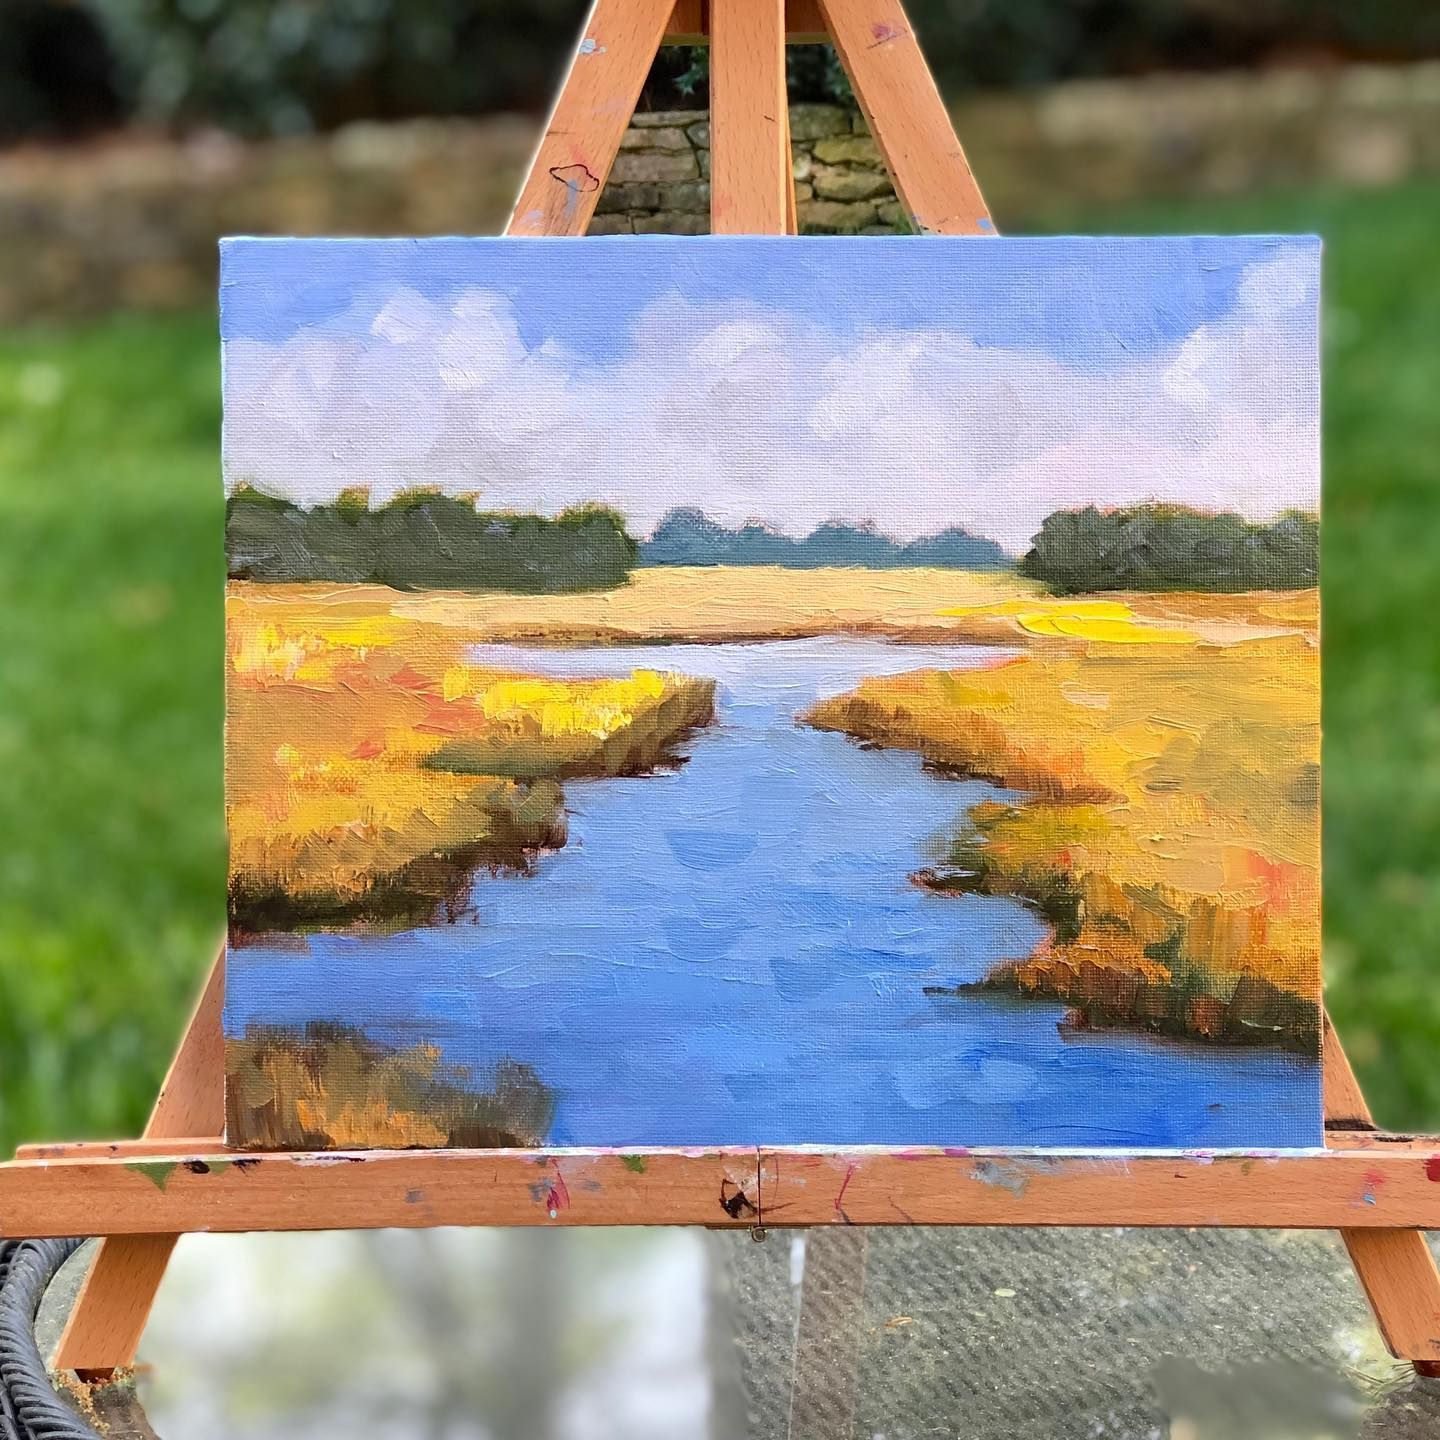 """This Marsh oil painting (8 x 10"""") captures the blue water and golden grasses of the low country.  No Place I'd Rather Be"""" seems like a good name for this piece.   Wishing I was there right now, feeling the breeze rustle grass and hearing the tidal flow of the water."""